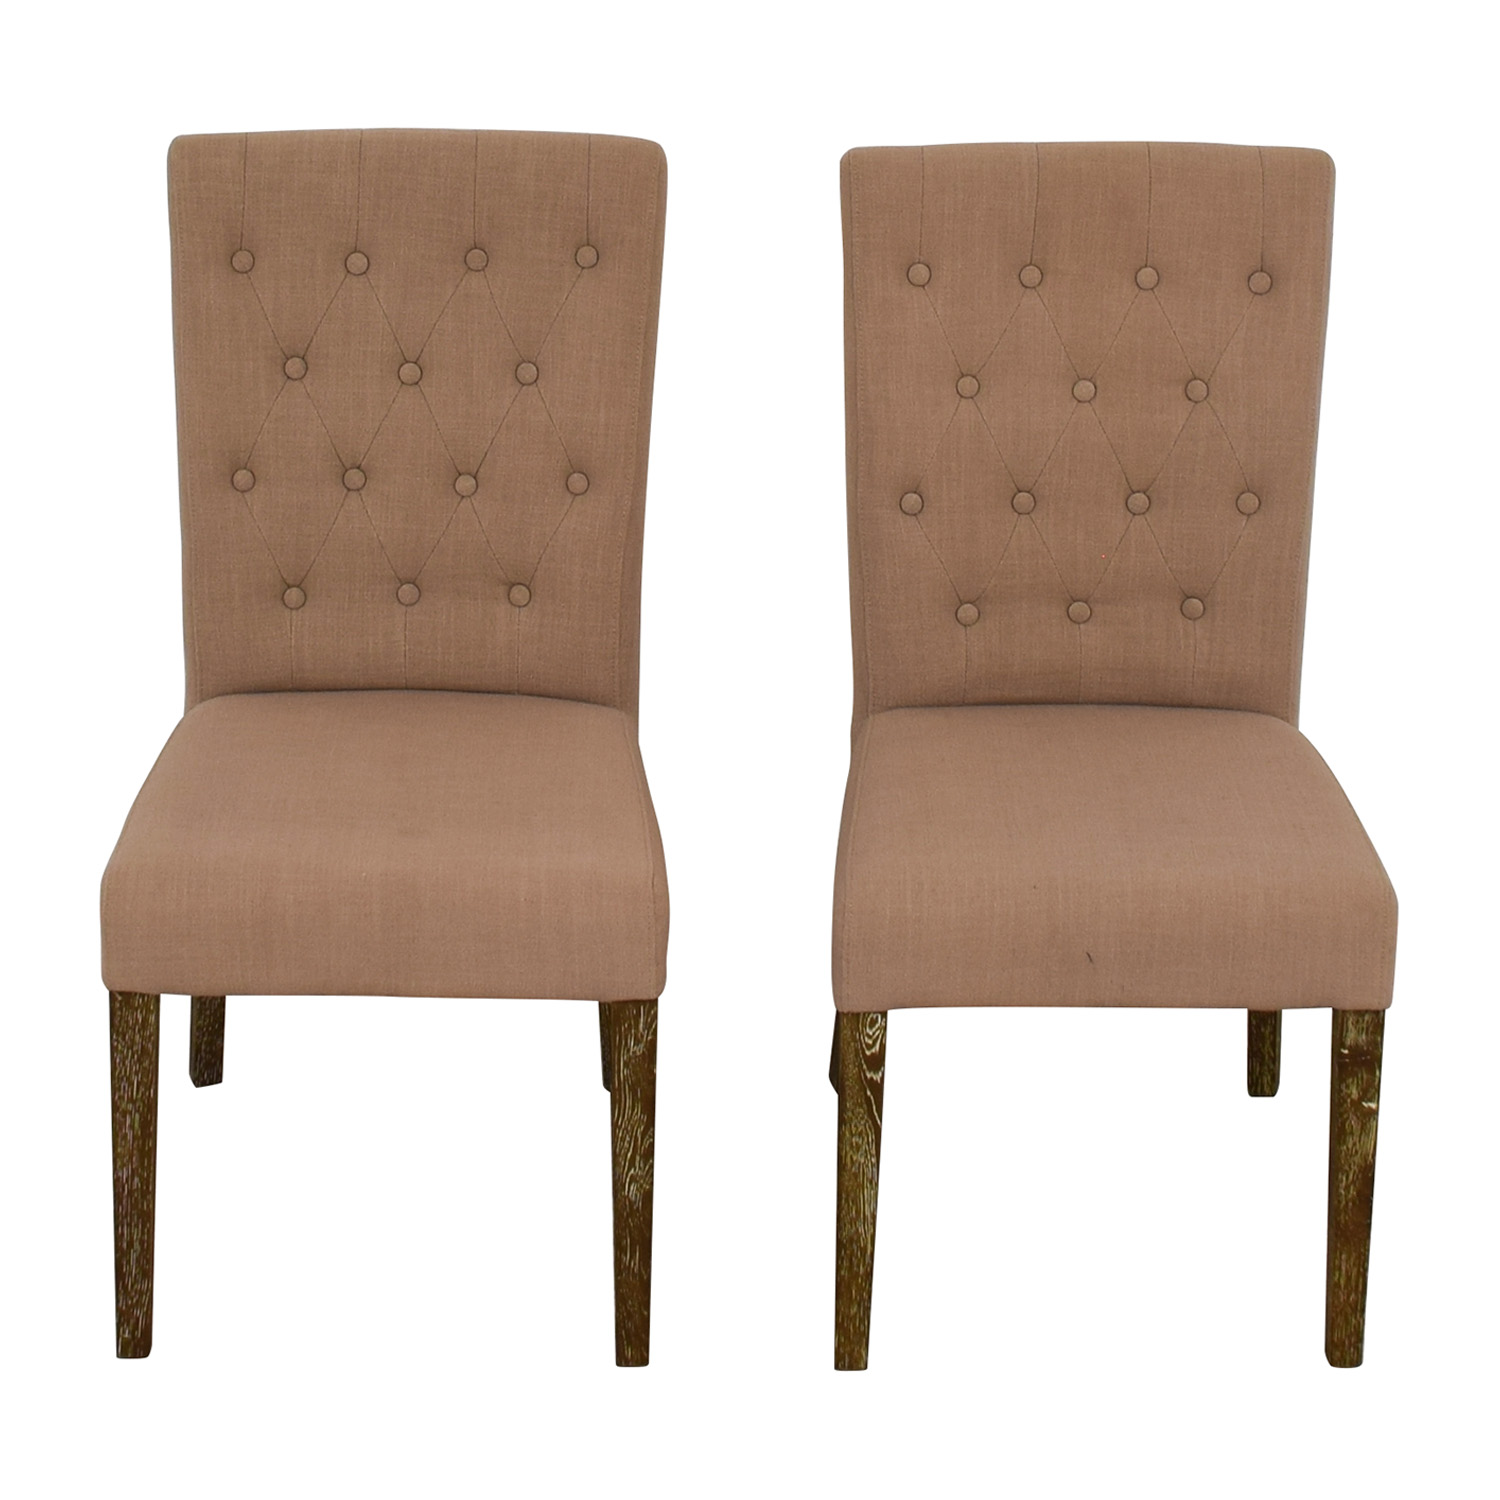 linen dining chairs french classic concepts tufted beige linen dining chairs on sale 84 off